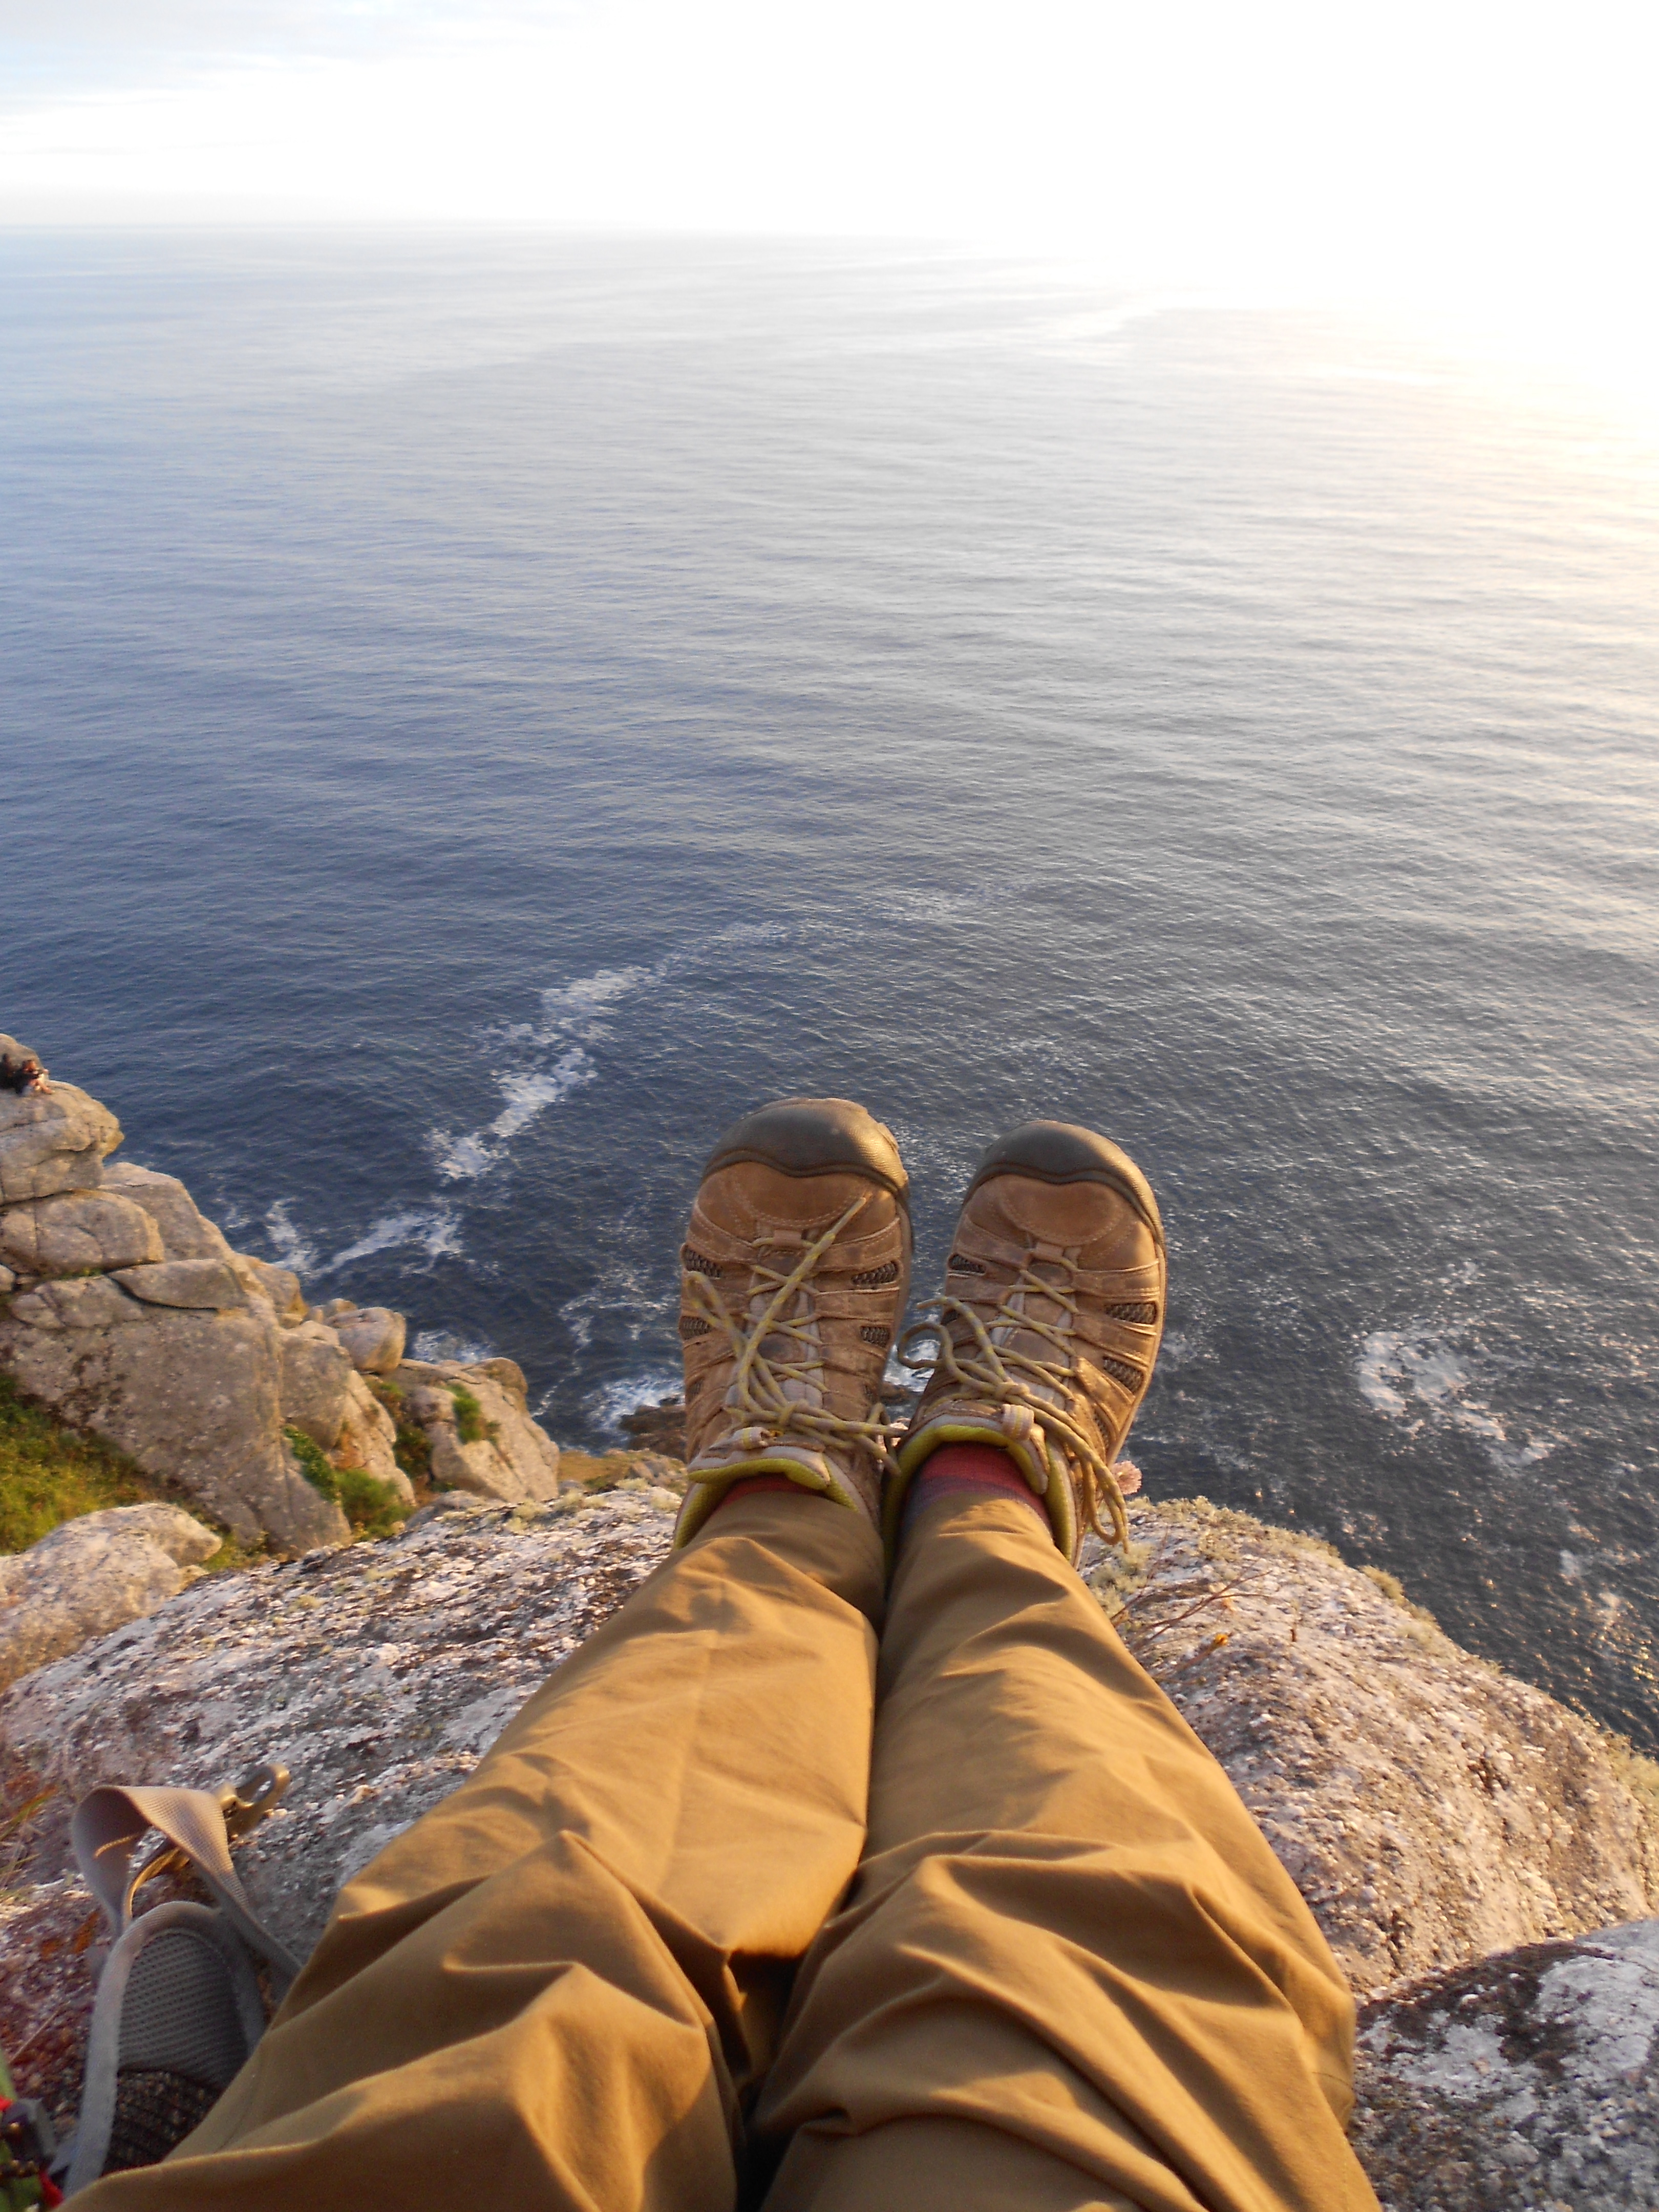 Final steps to Finisterre, Camino de Santiago